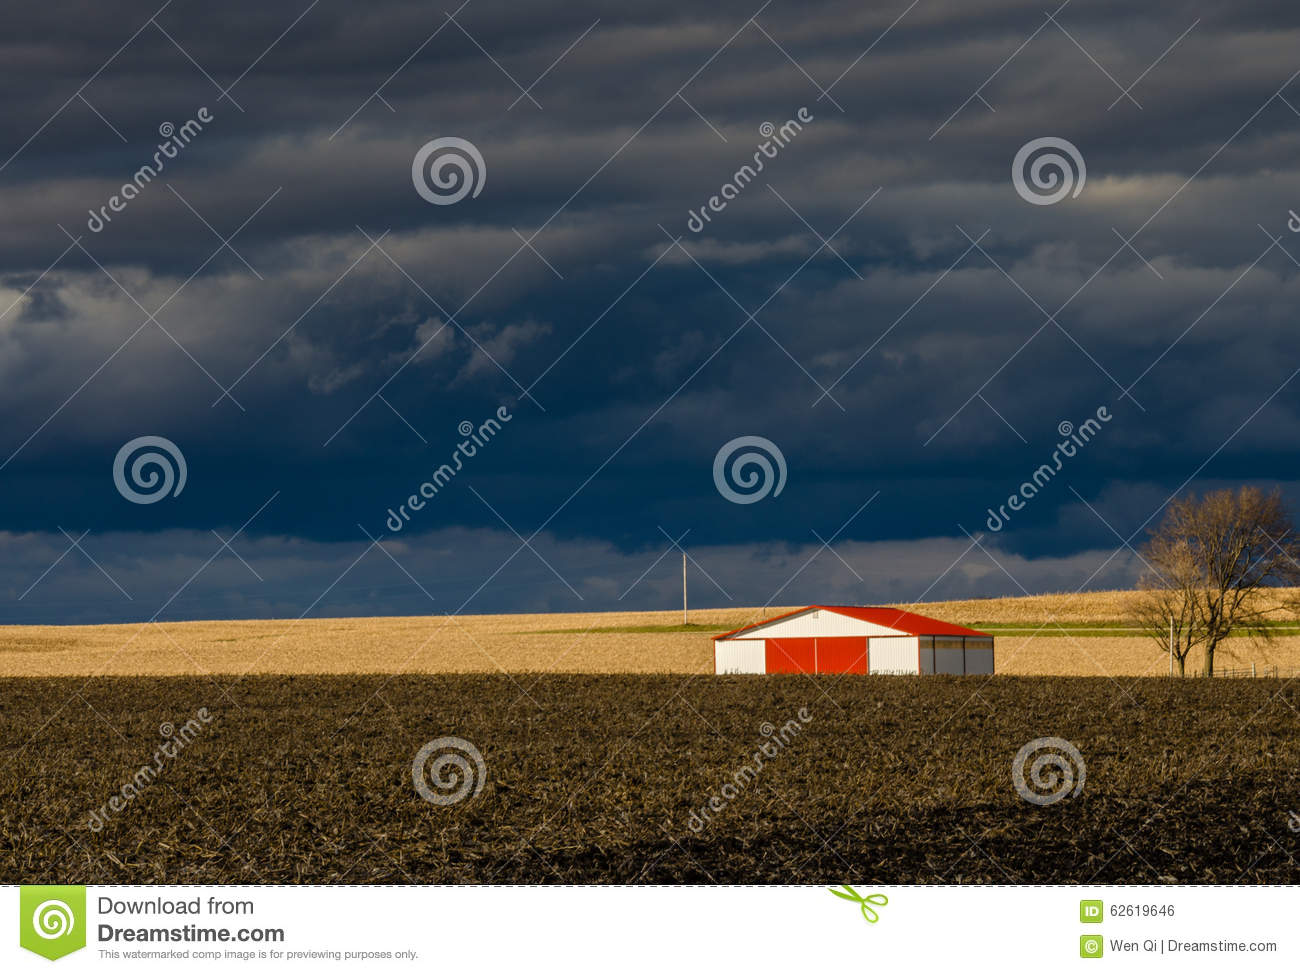 The barn with red roof under storm clouds